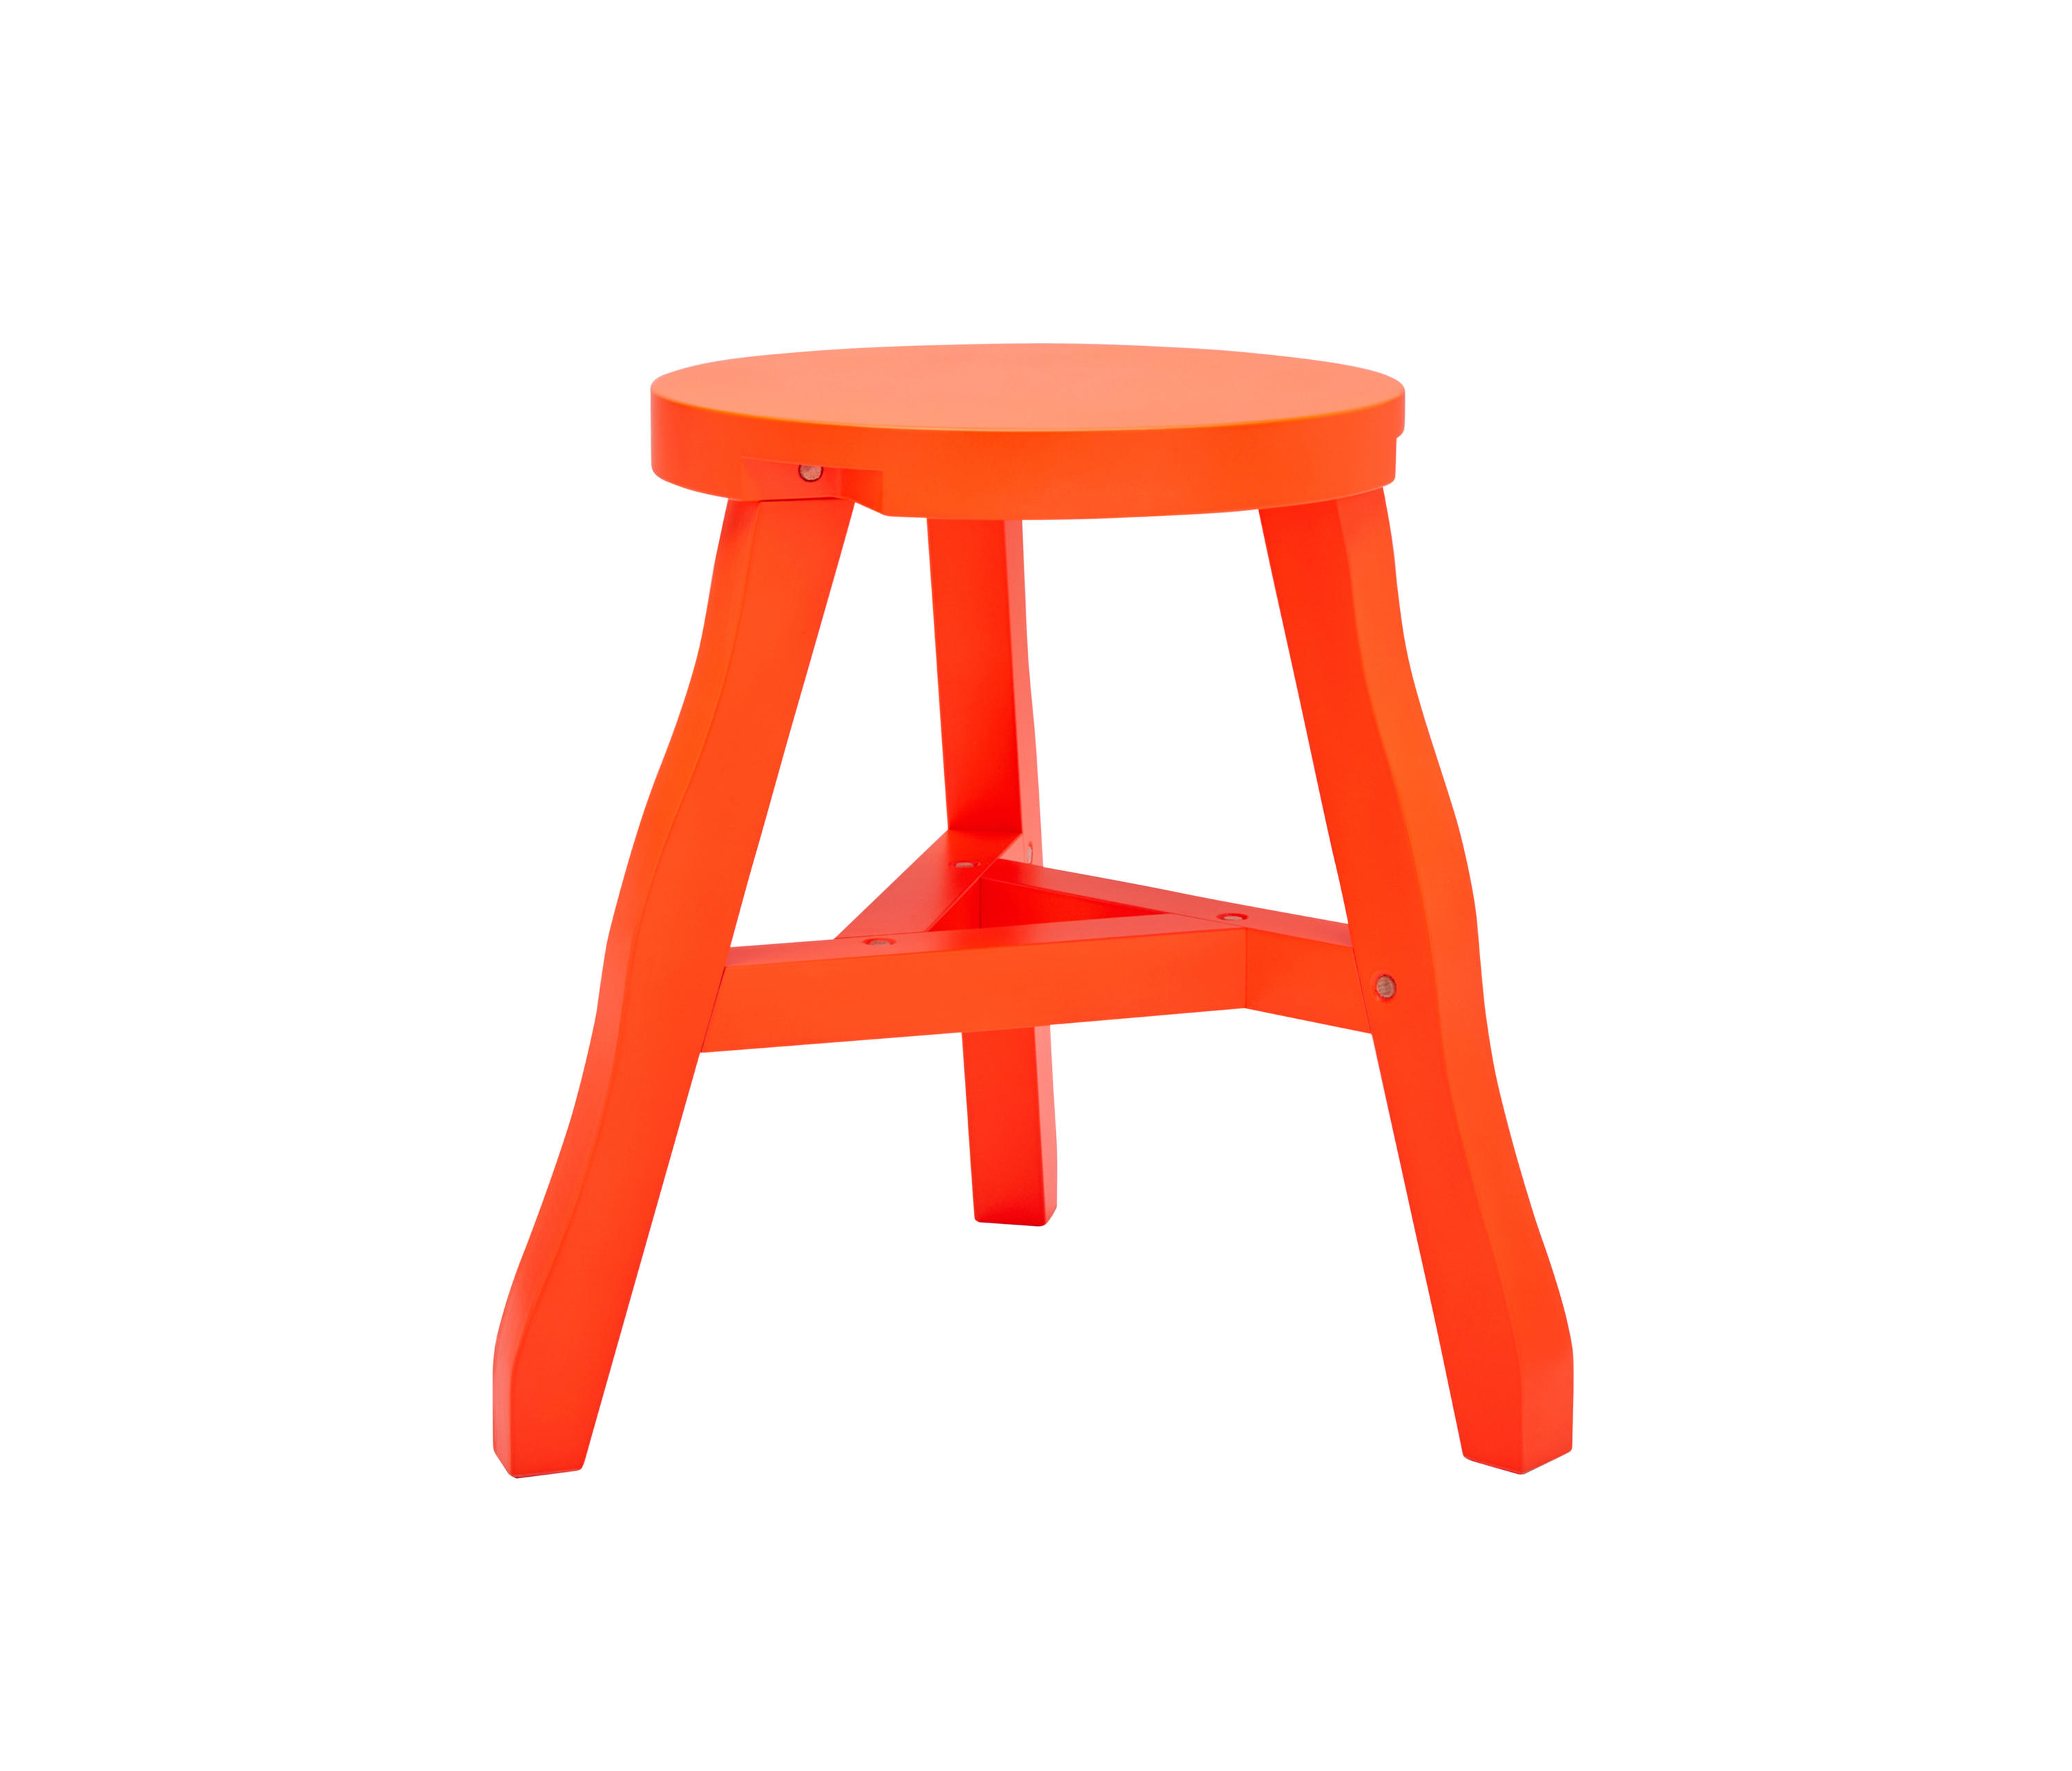 Offcut Stool Fluoro Classroom School Stools From Tom